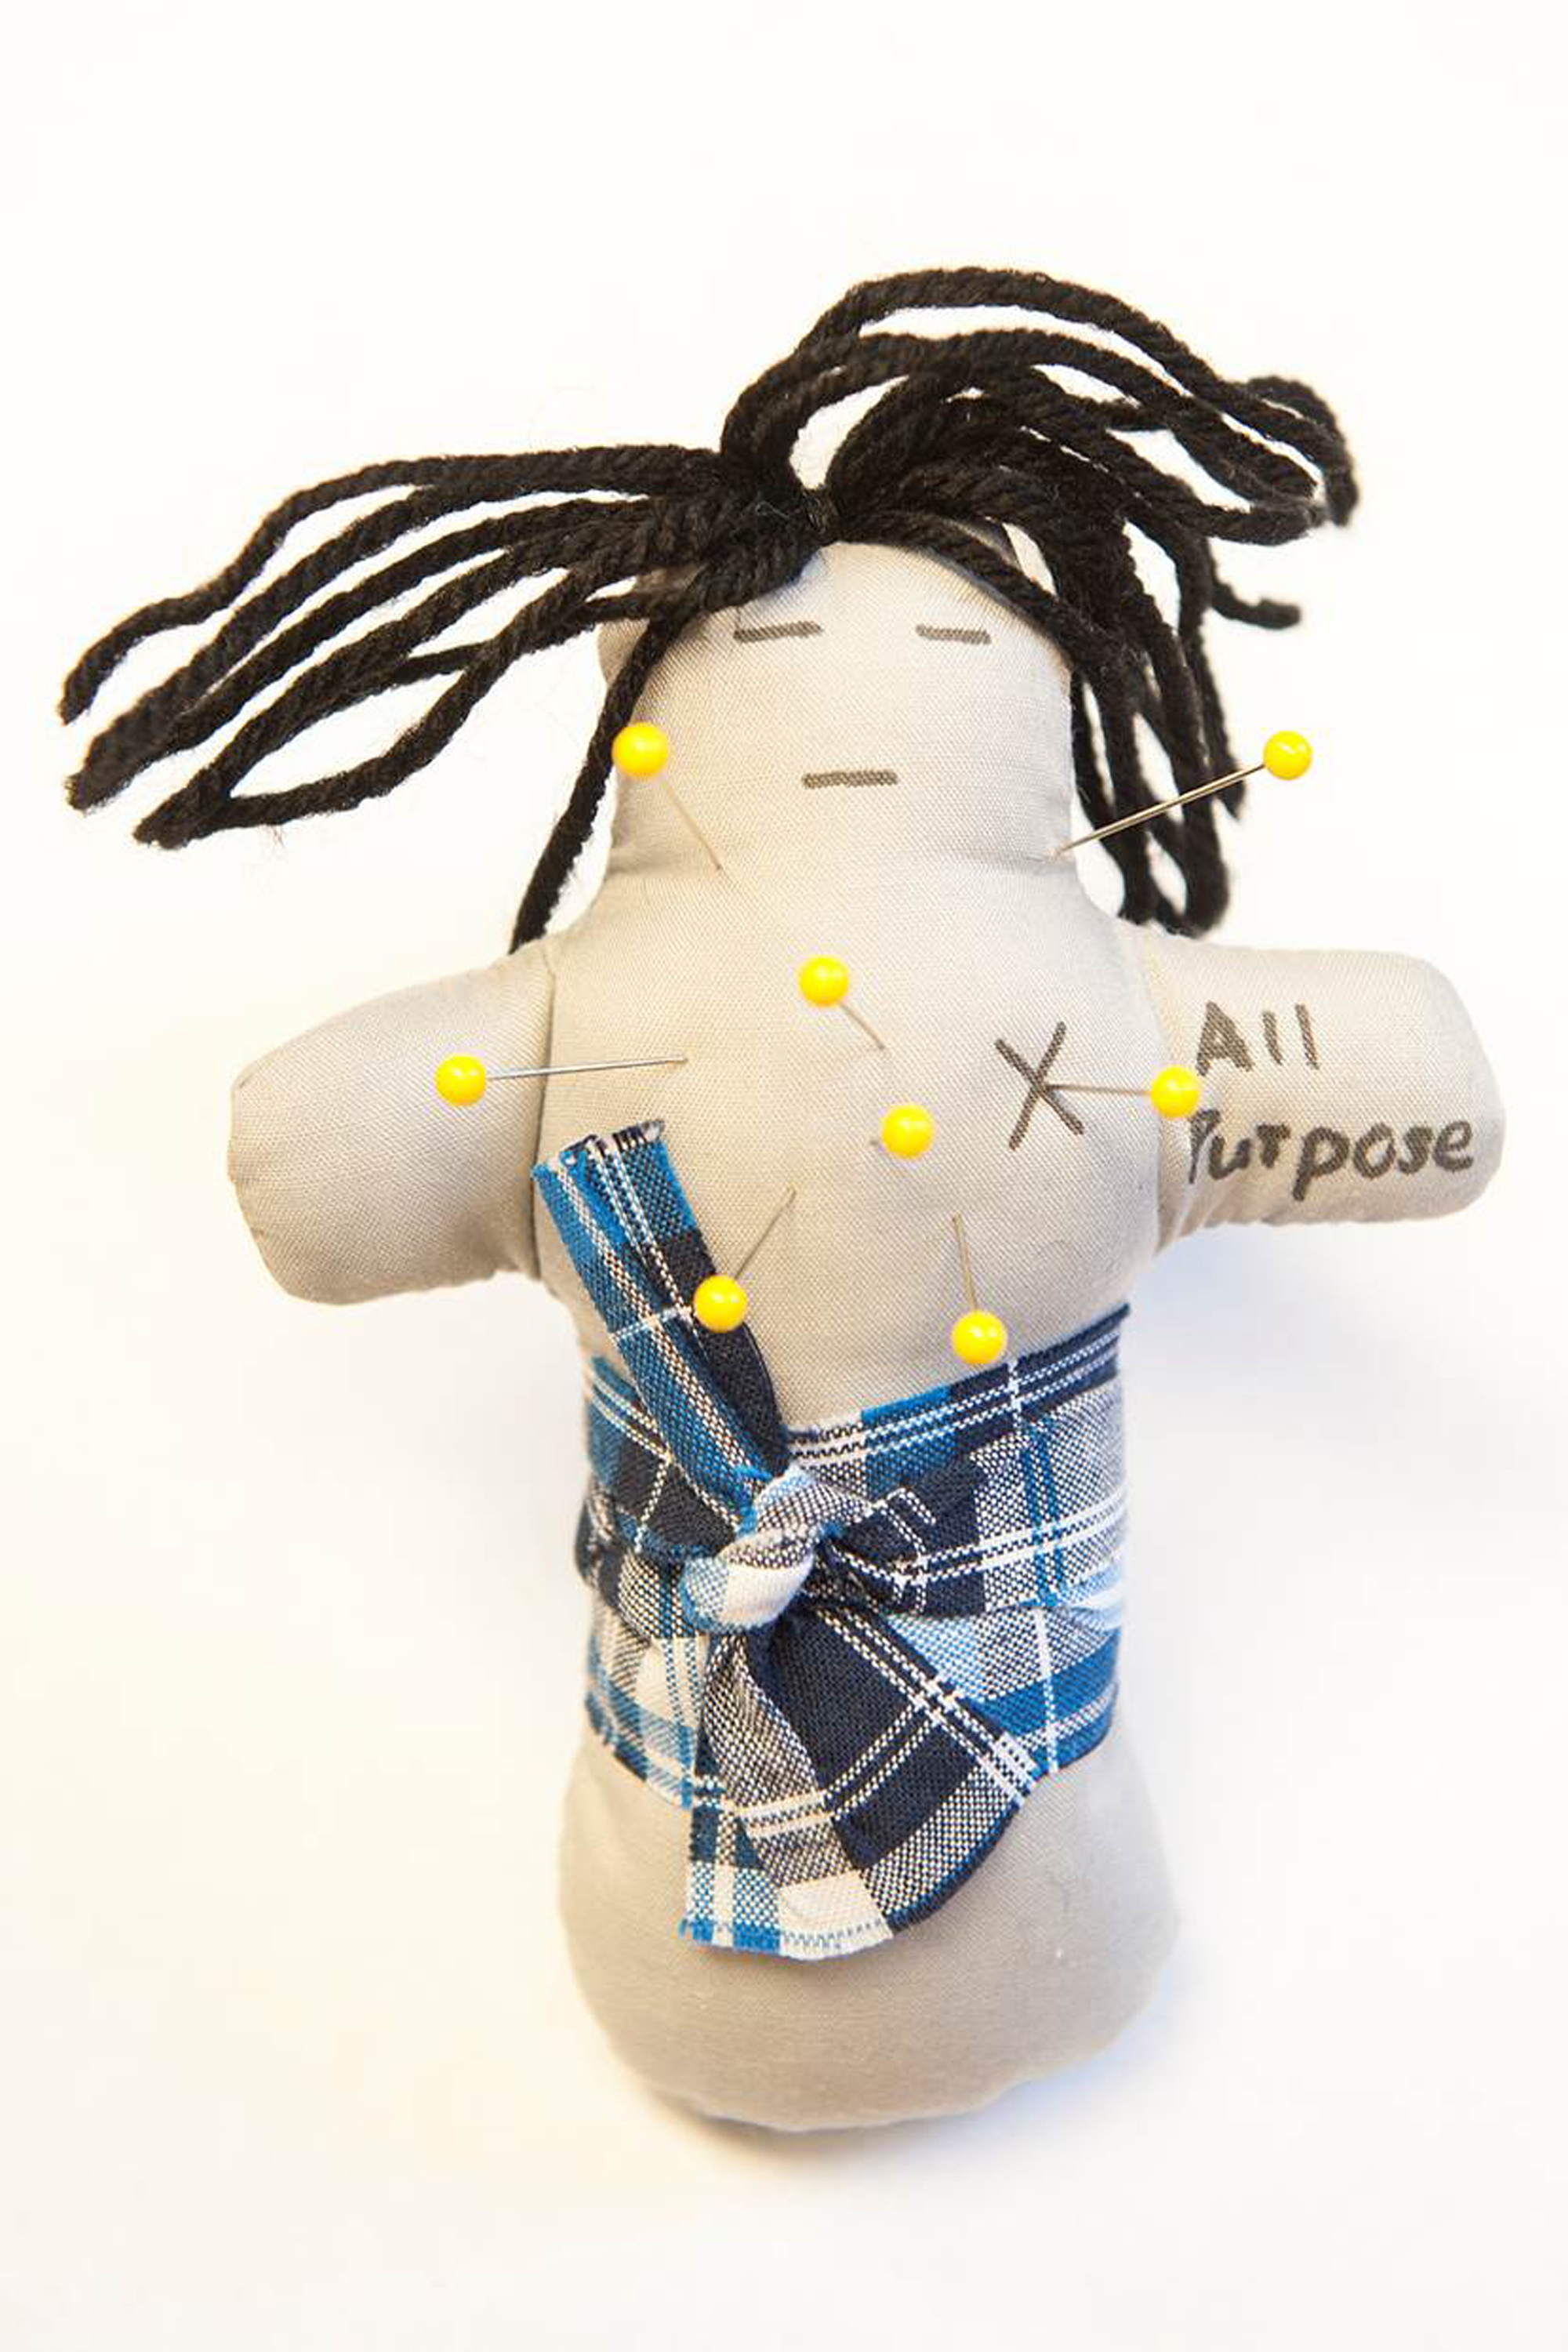 Researchers used voodoo dolls to measure aggression as blood sugar levels rise and fall.